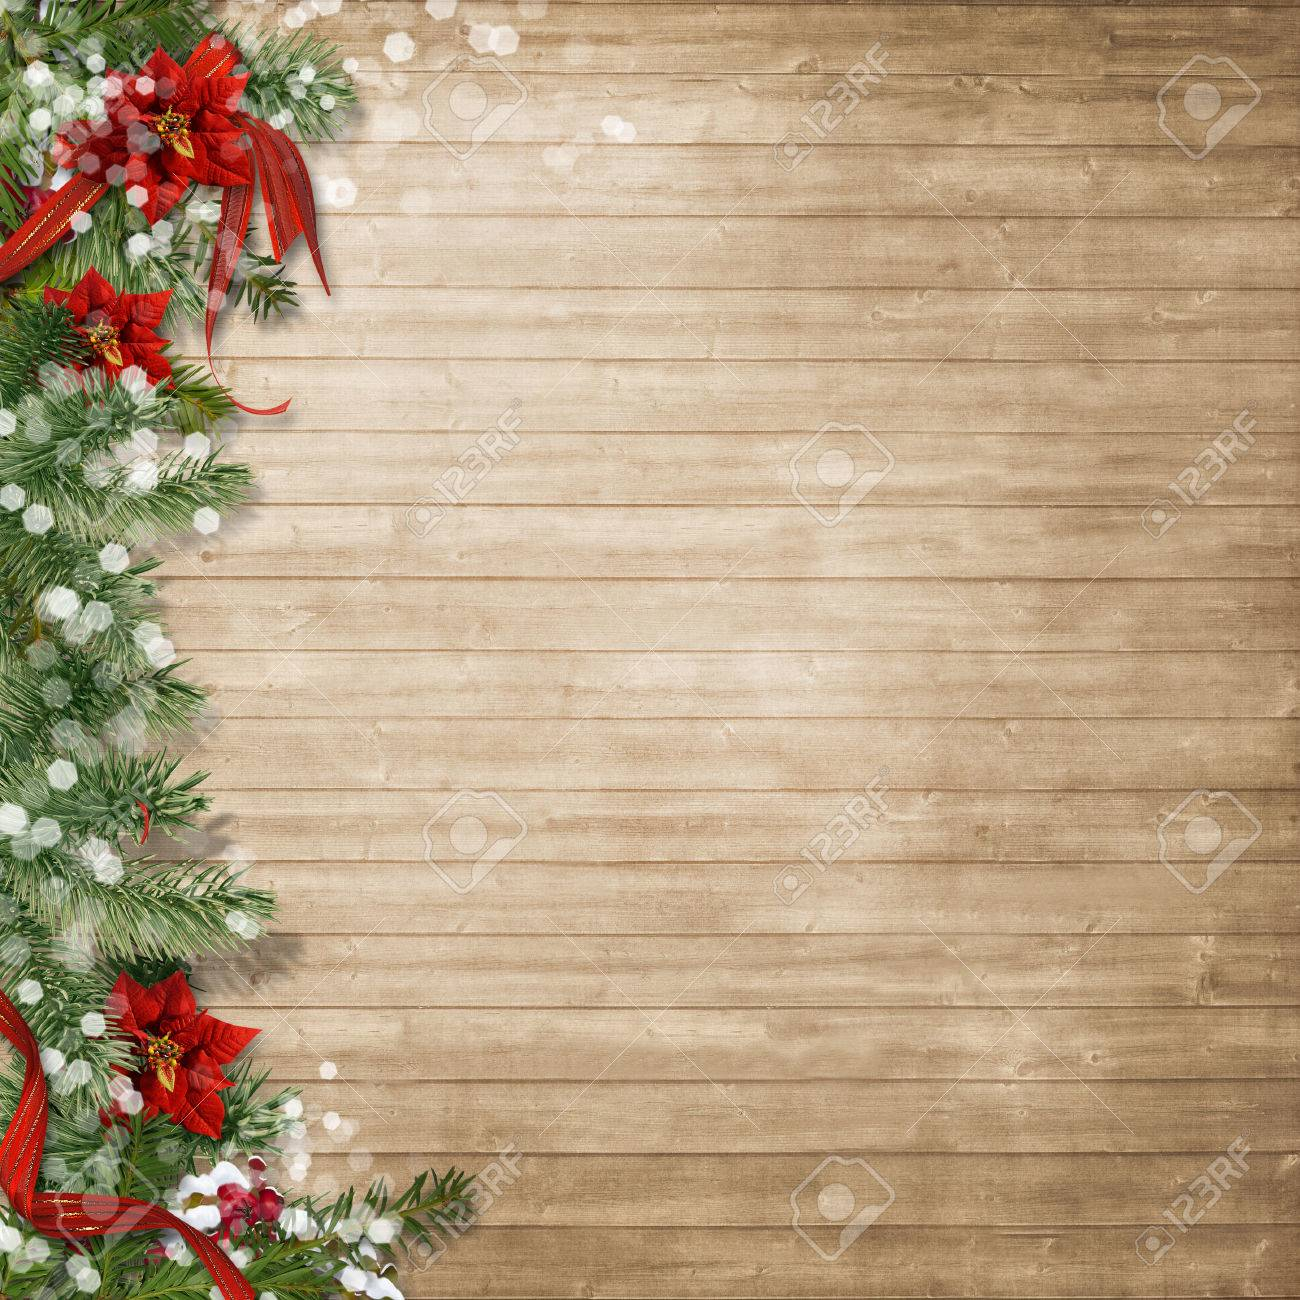 Christmas Wood Background.Christmas Wood Background With Poinsettia And Firtree